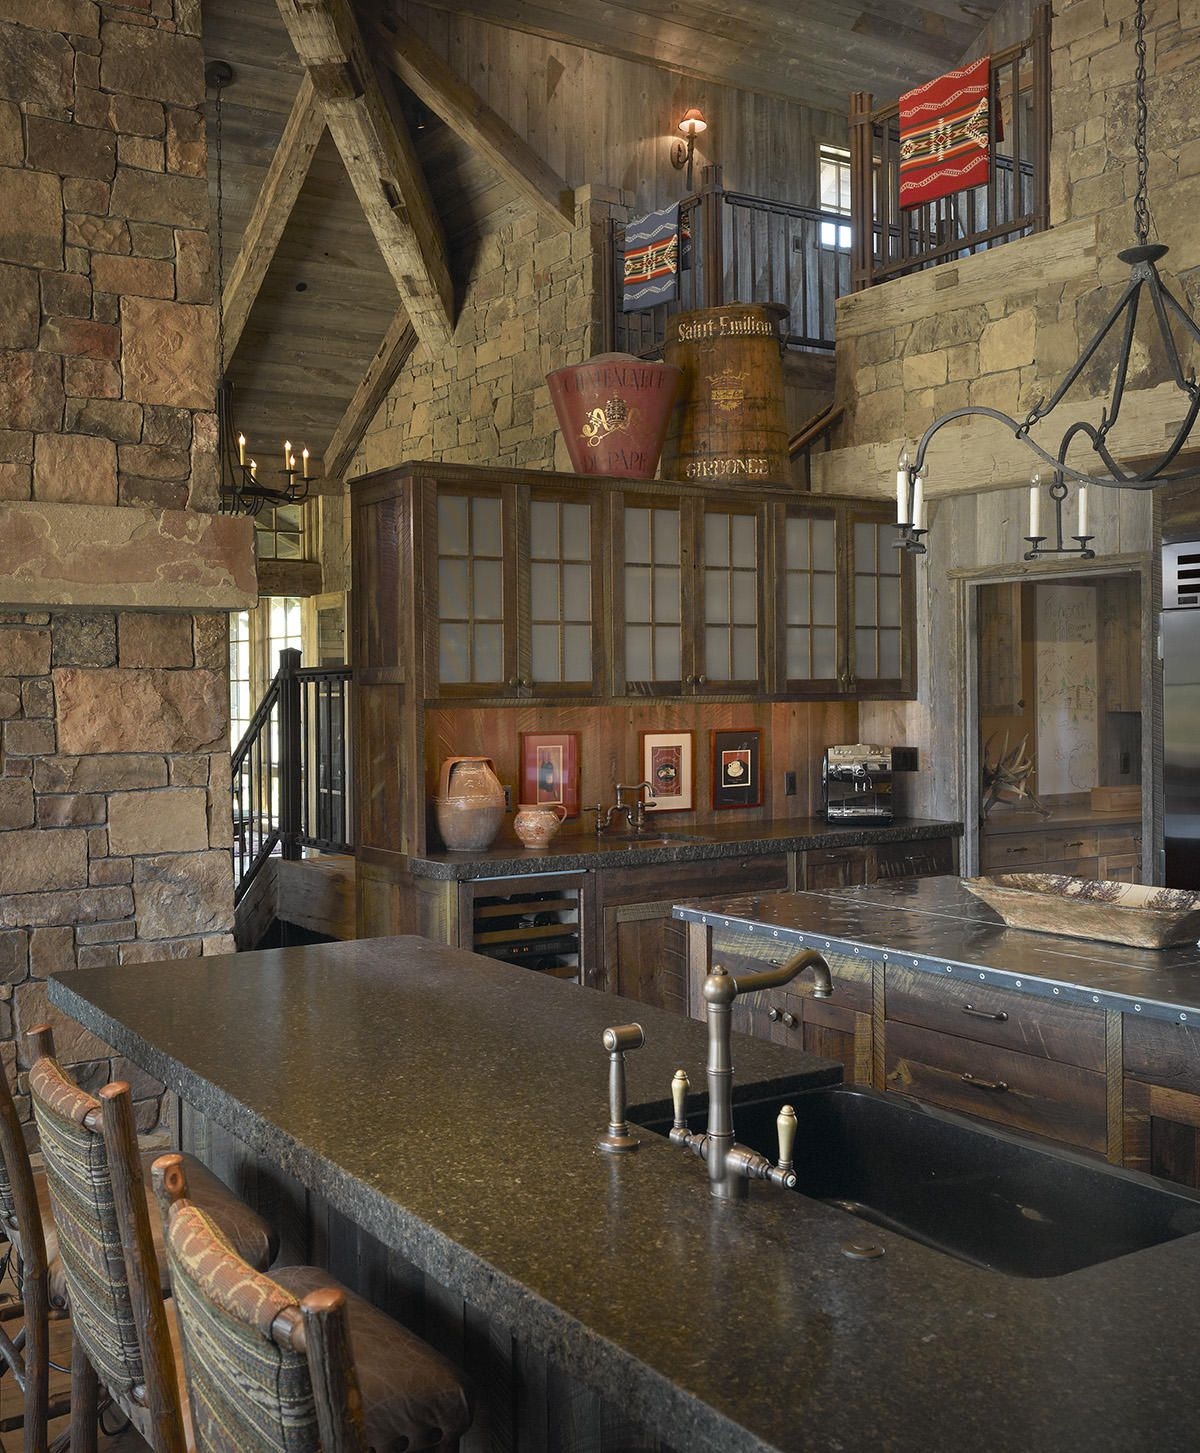 Amazing stone work and other details in this log home kitchen make